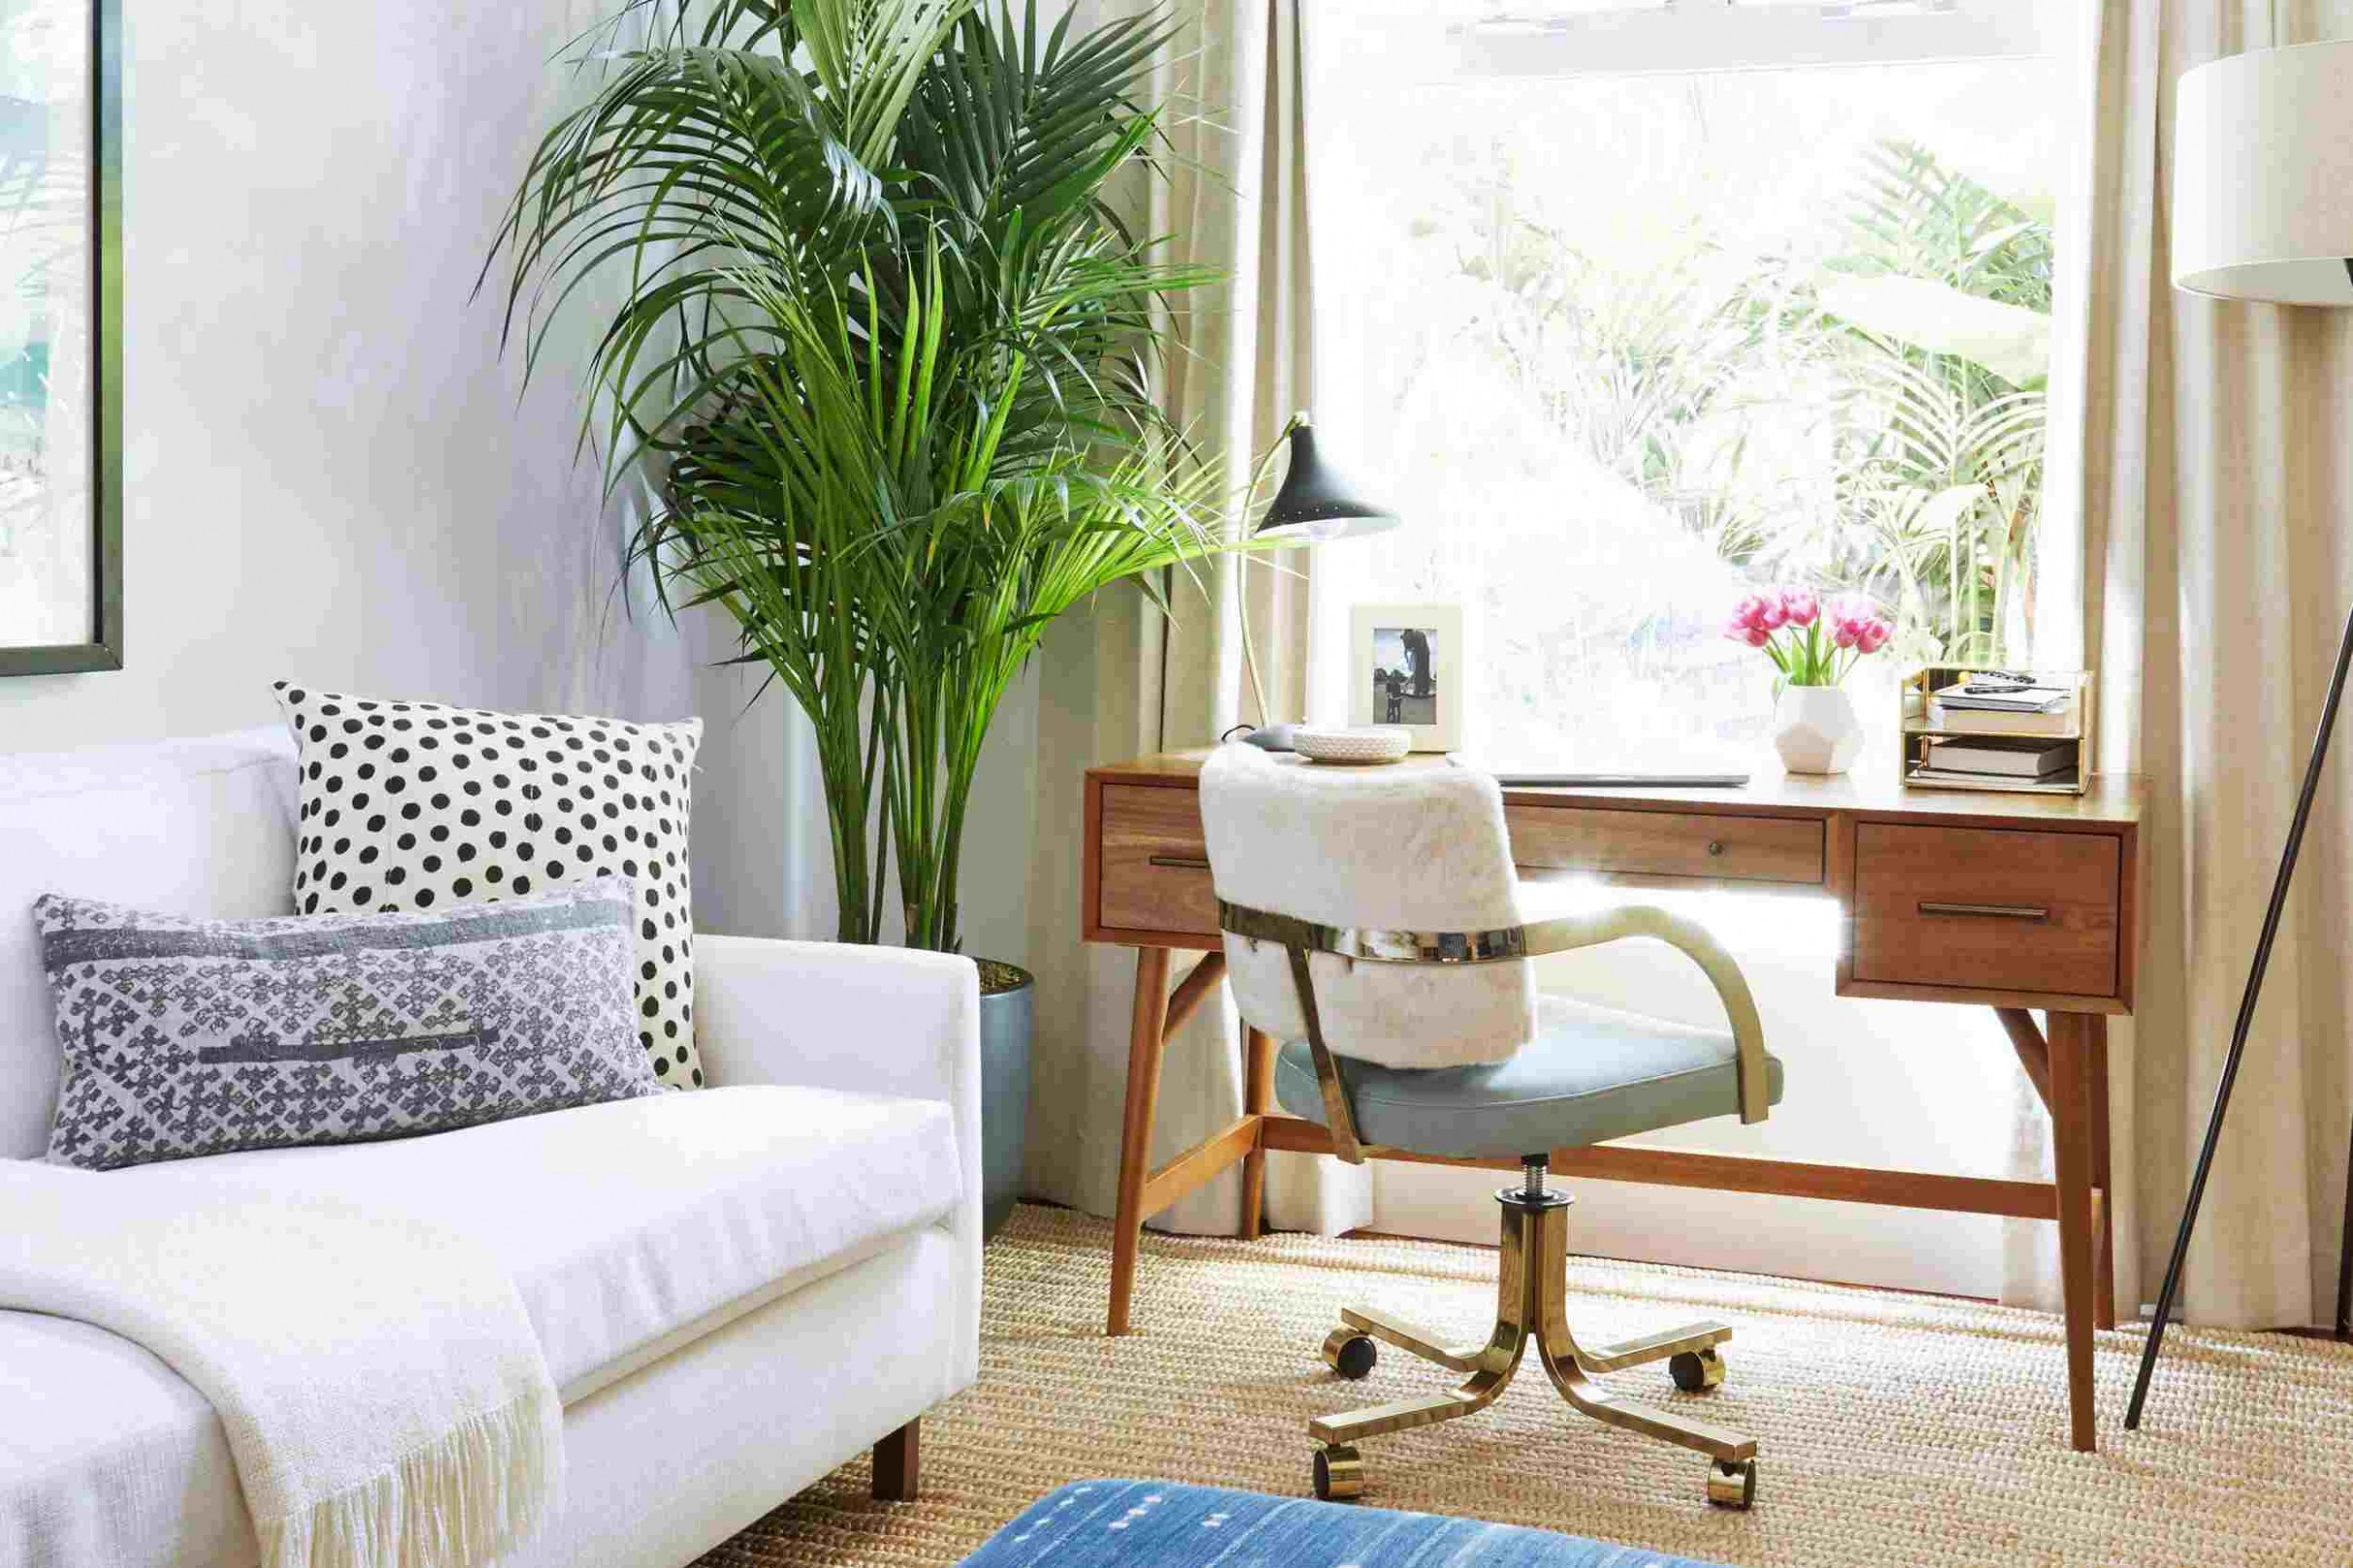 Small Home Office Ideas That Are Surprisingly Stylish - Home Office Ideas Small Bedroom